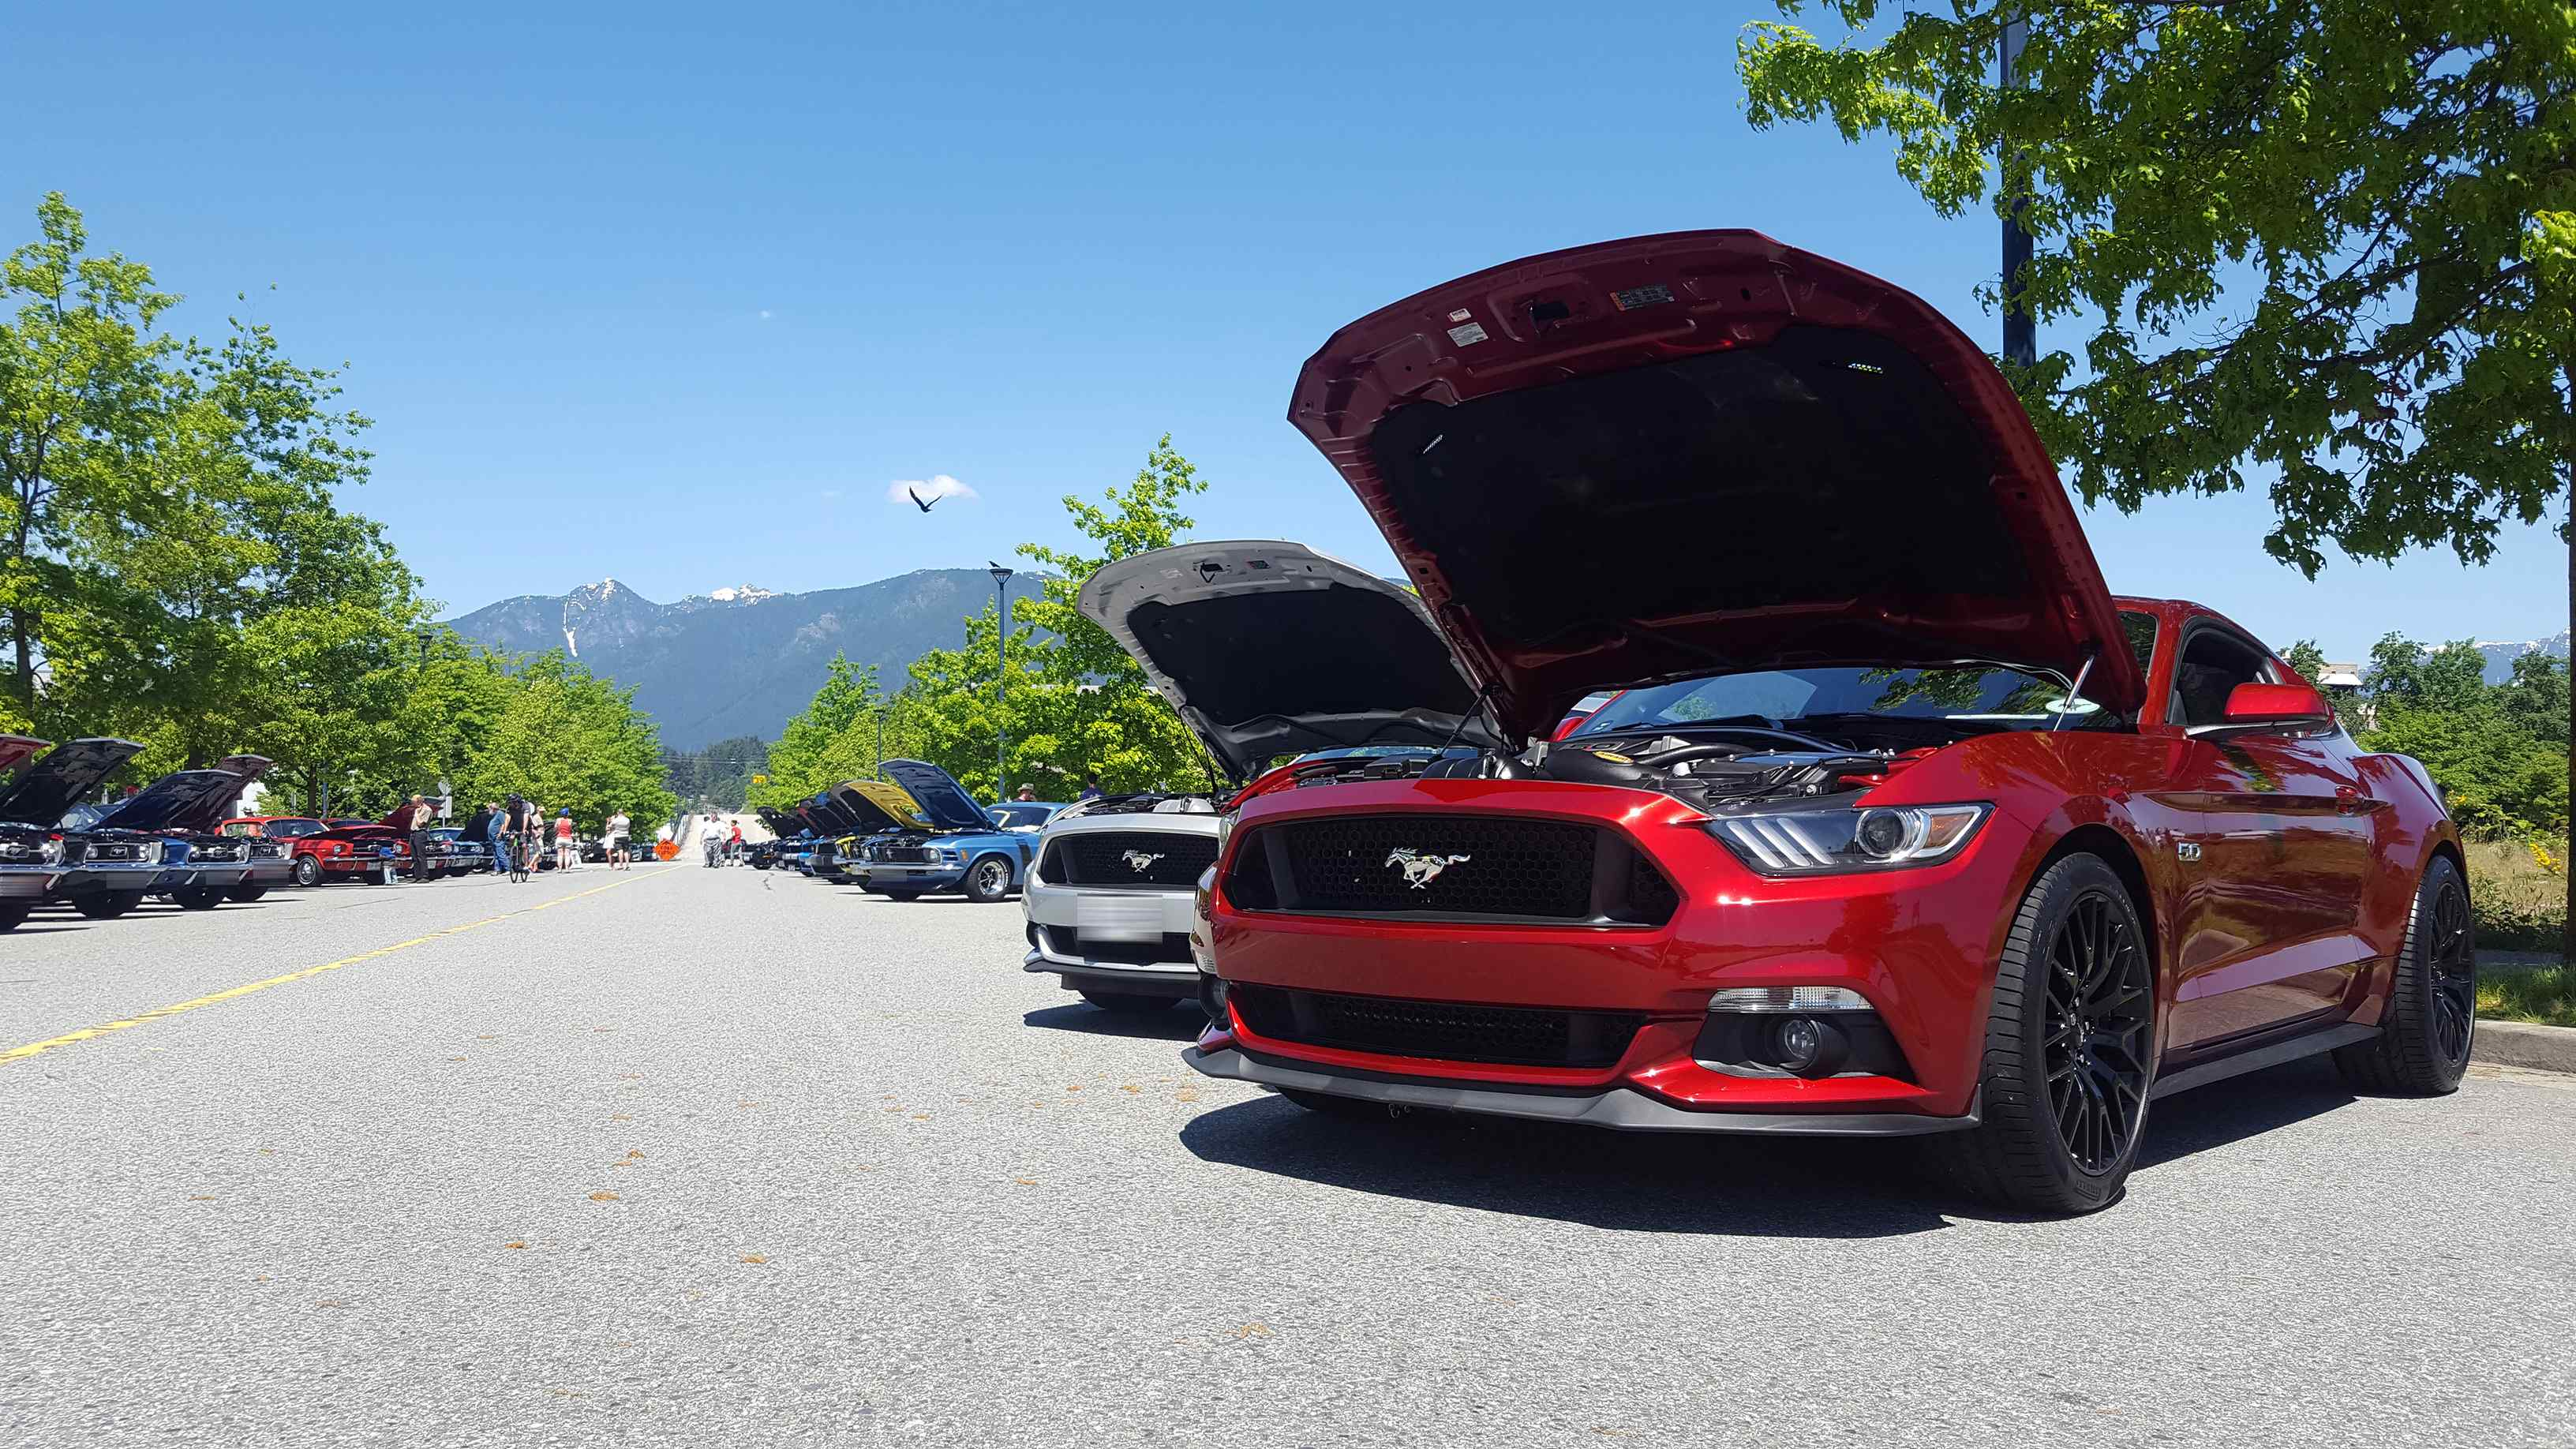 Greater Vancouver Mustang Association Spring Car Show at Harbourside Place North Vancouver